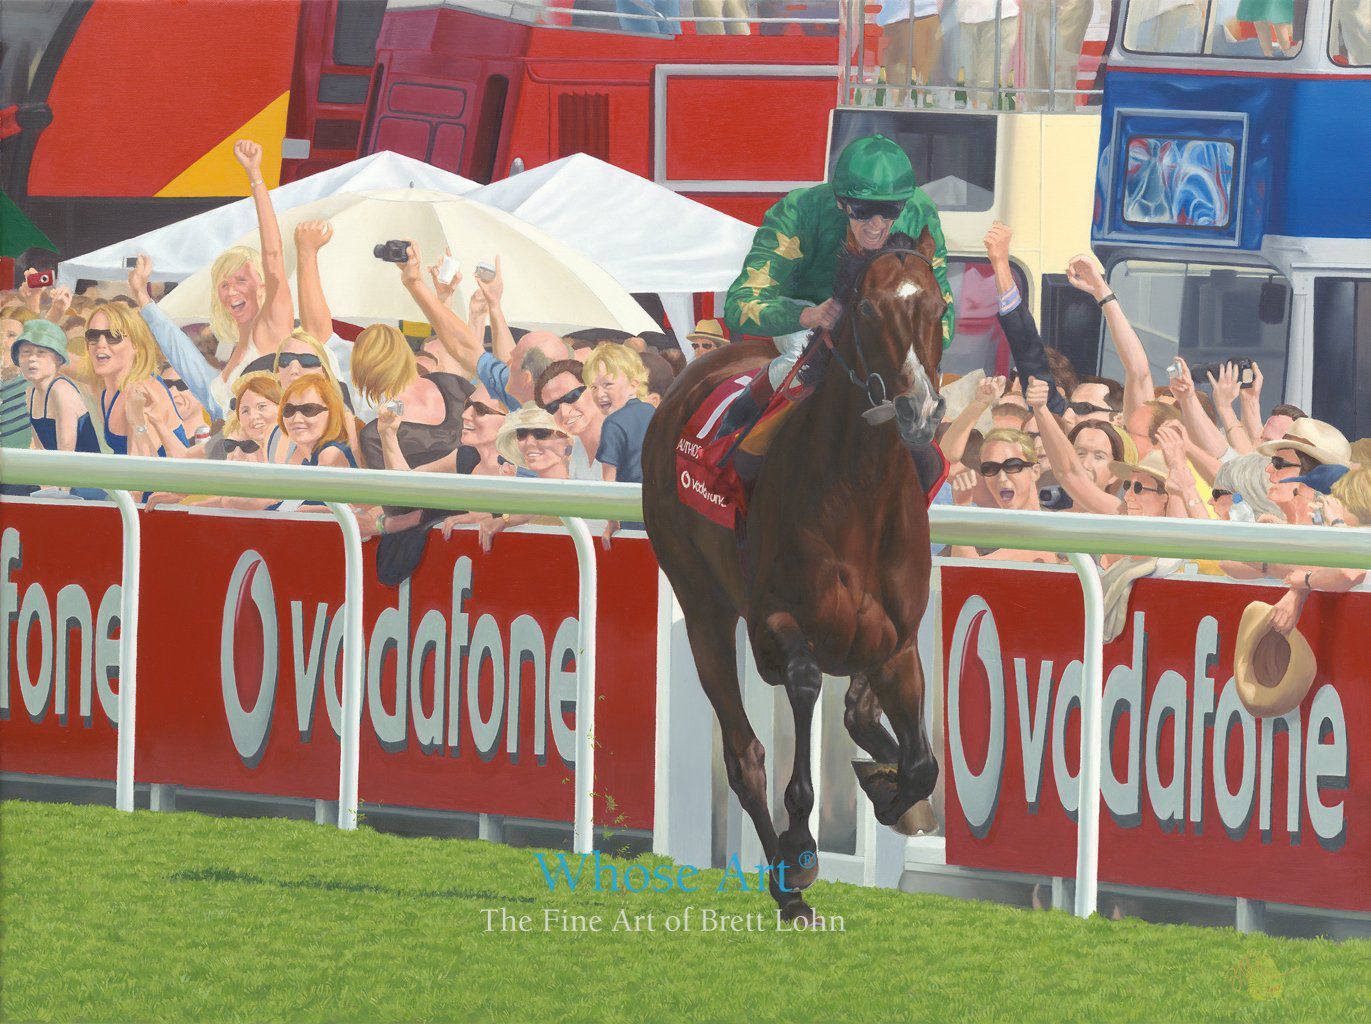 Epsom derby painting showing the Derby finish of Frankie Dettori and Authorized with the crowd celebrating wildly behind them